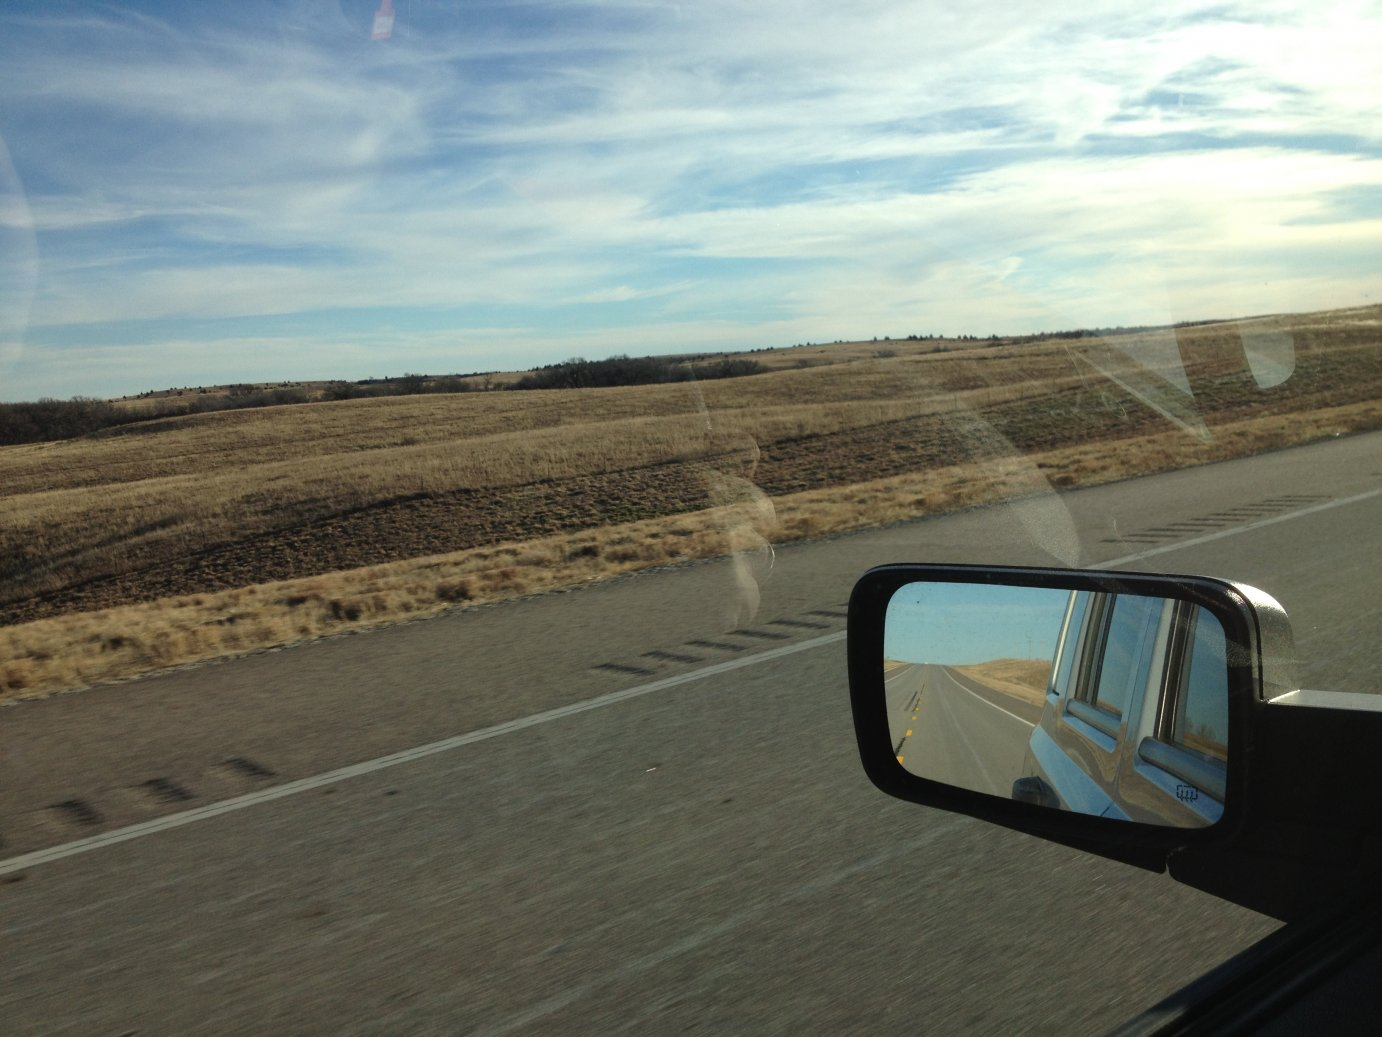 Driving through the plains of southwest Kansas. (Photo by J. Schafer)